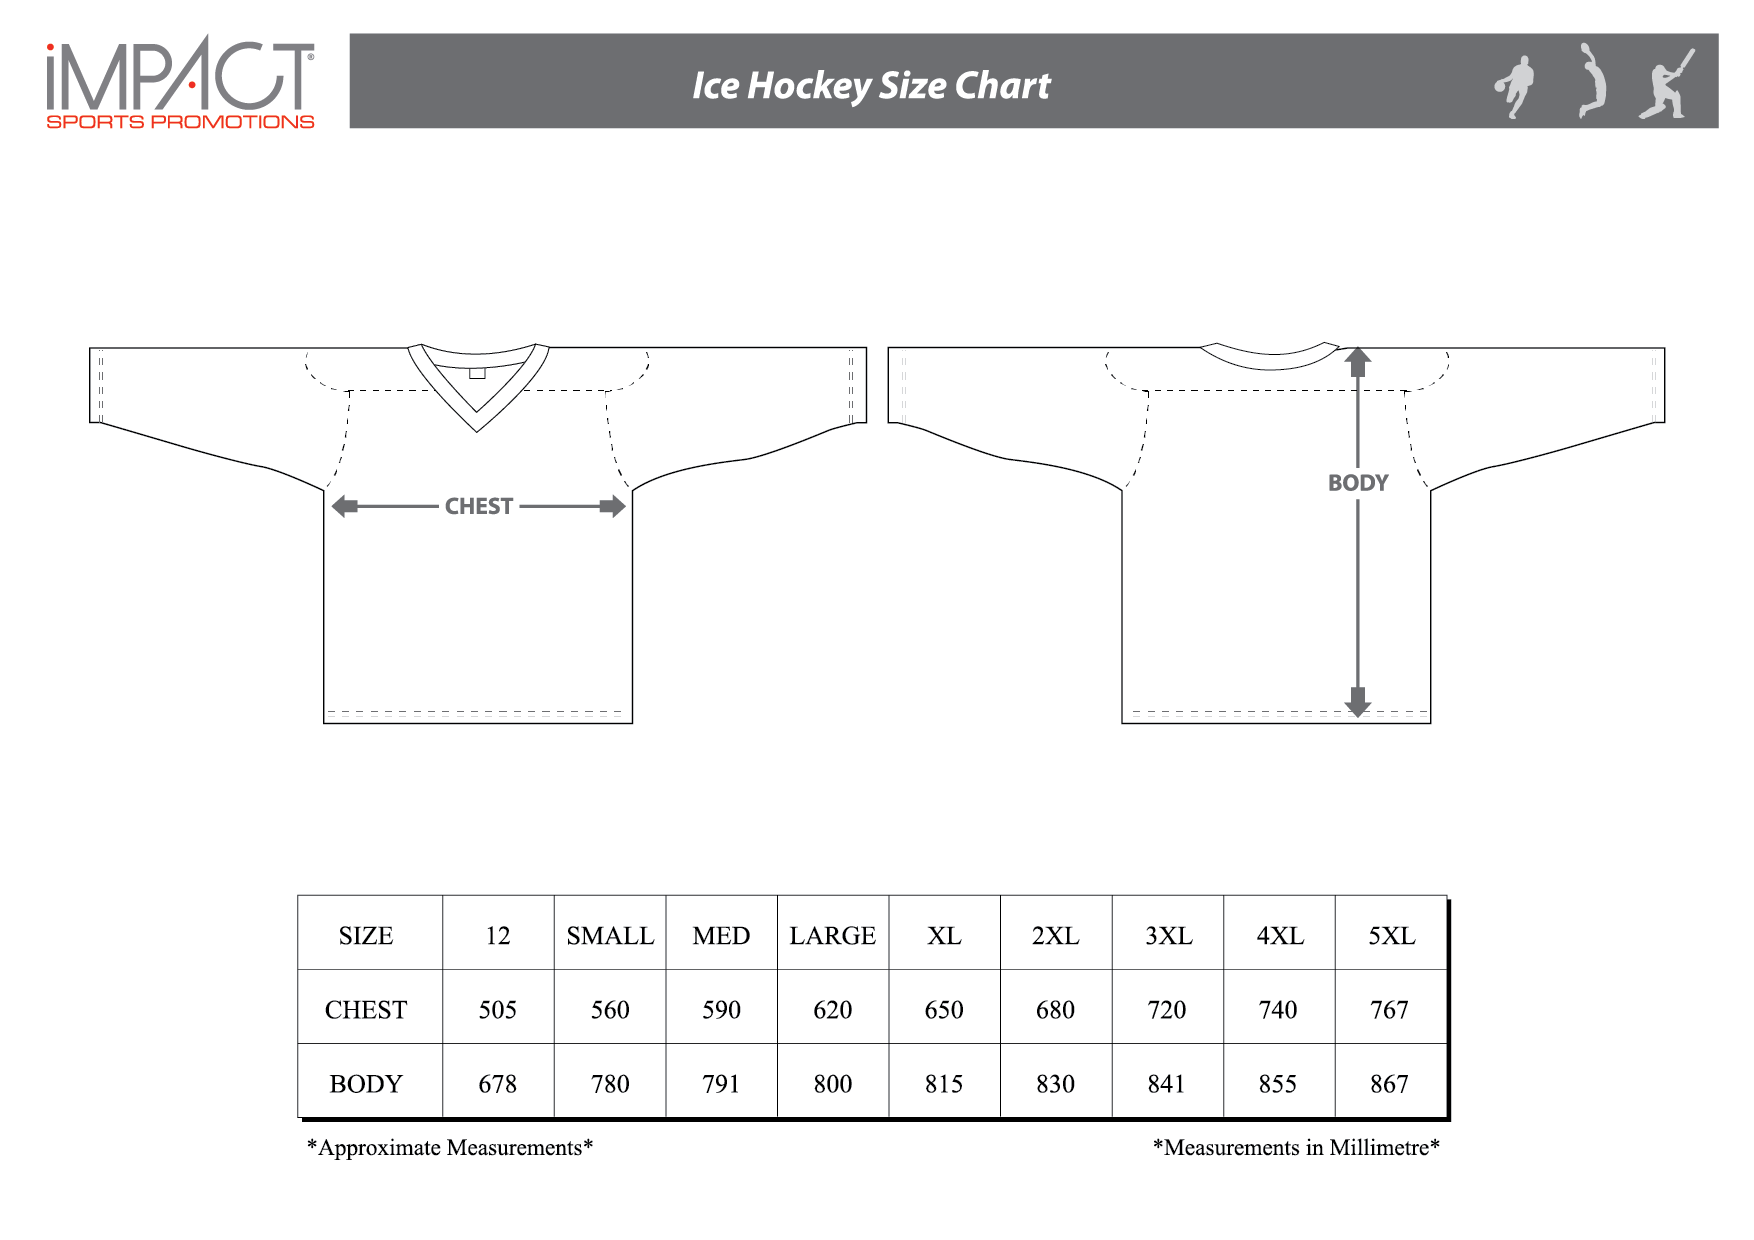 Impact SP Ice Hockey Size Chart